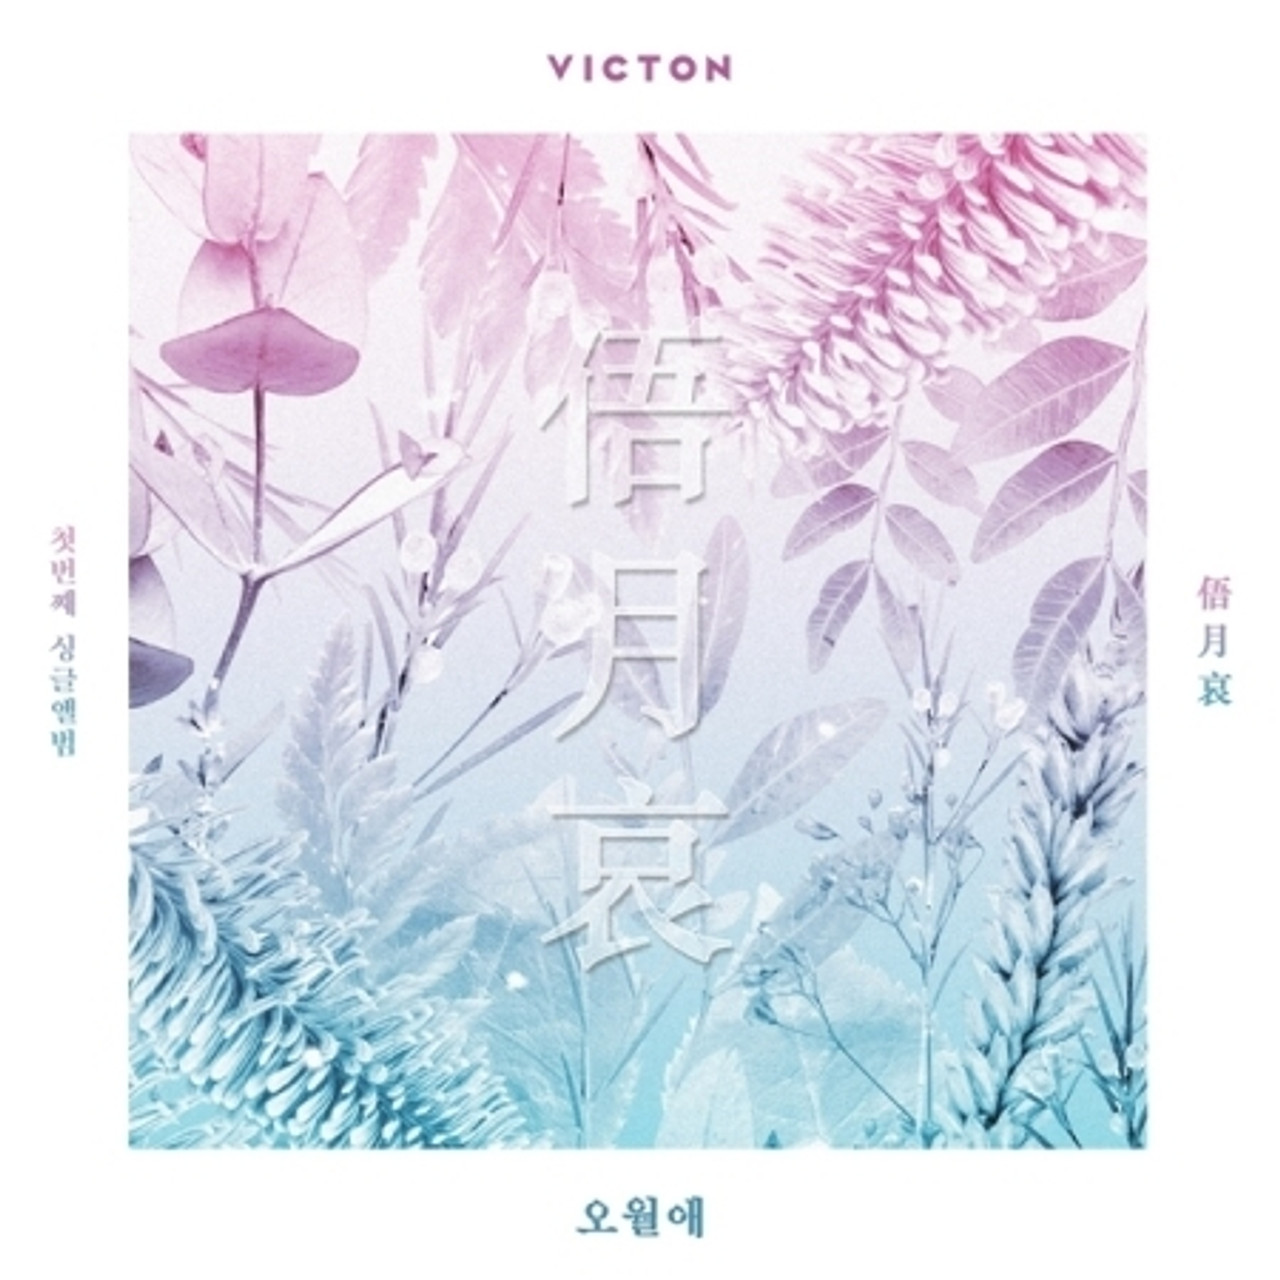 VICTON - 1st Single [???(???) Sad Love Of Youth]